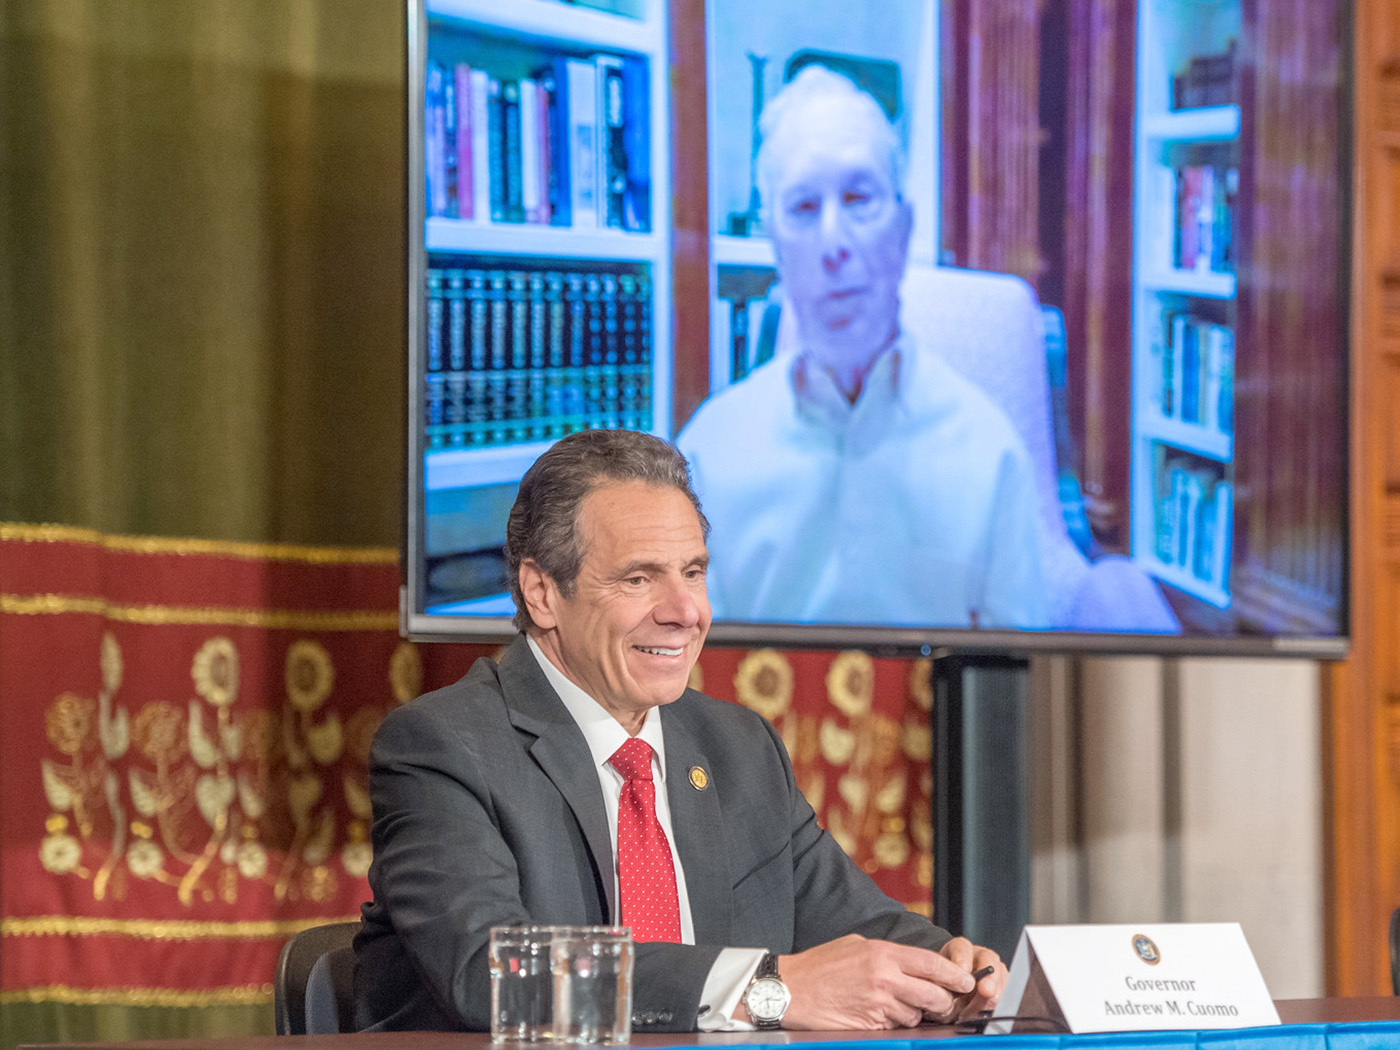 governor cuomo with mayor deblasio on video screen